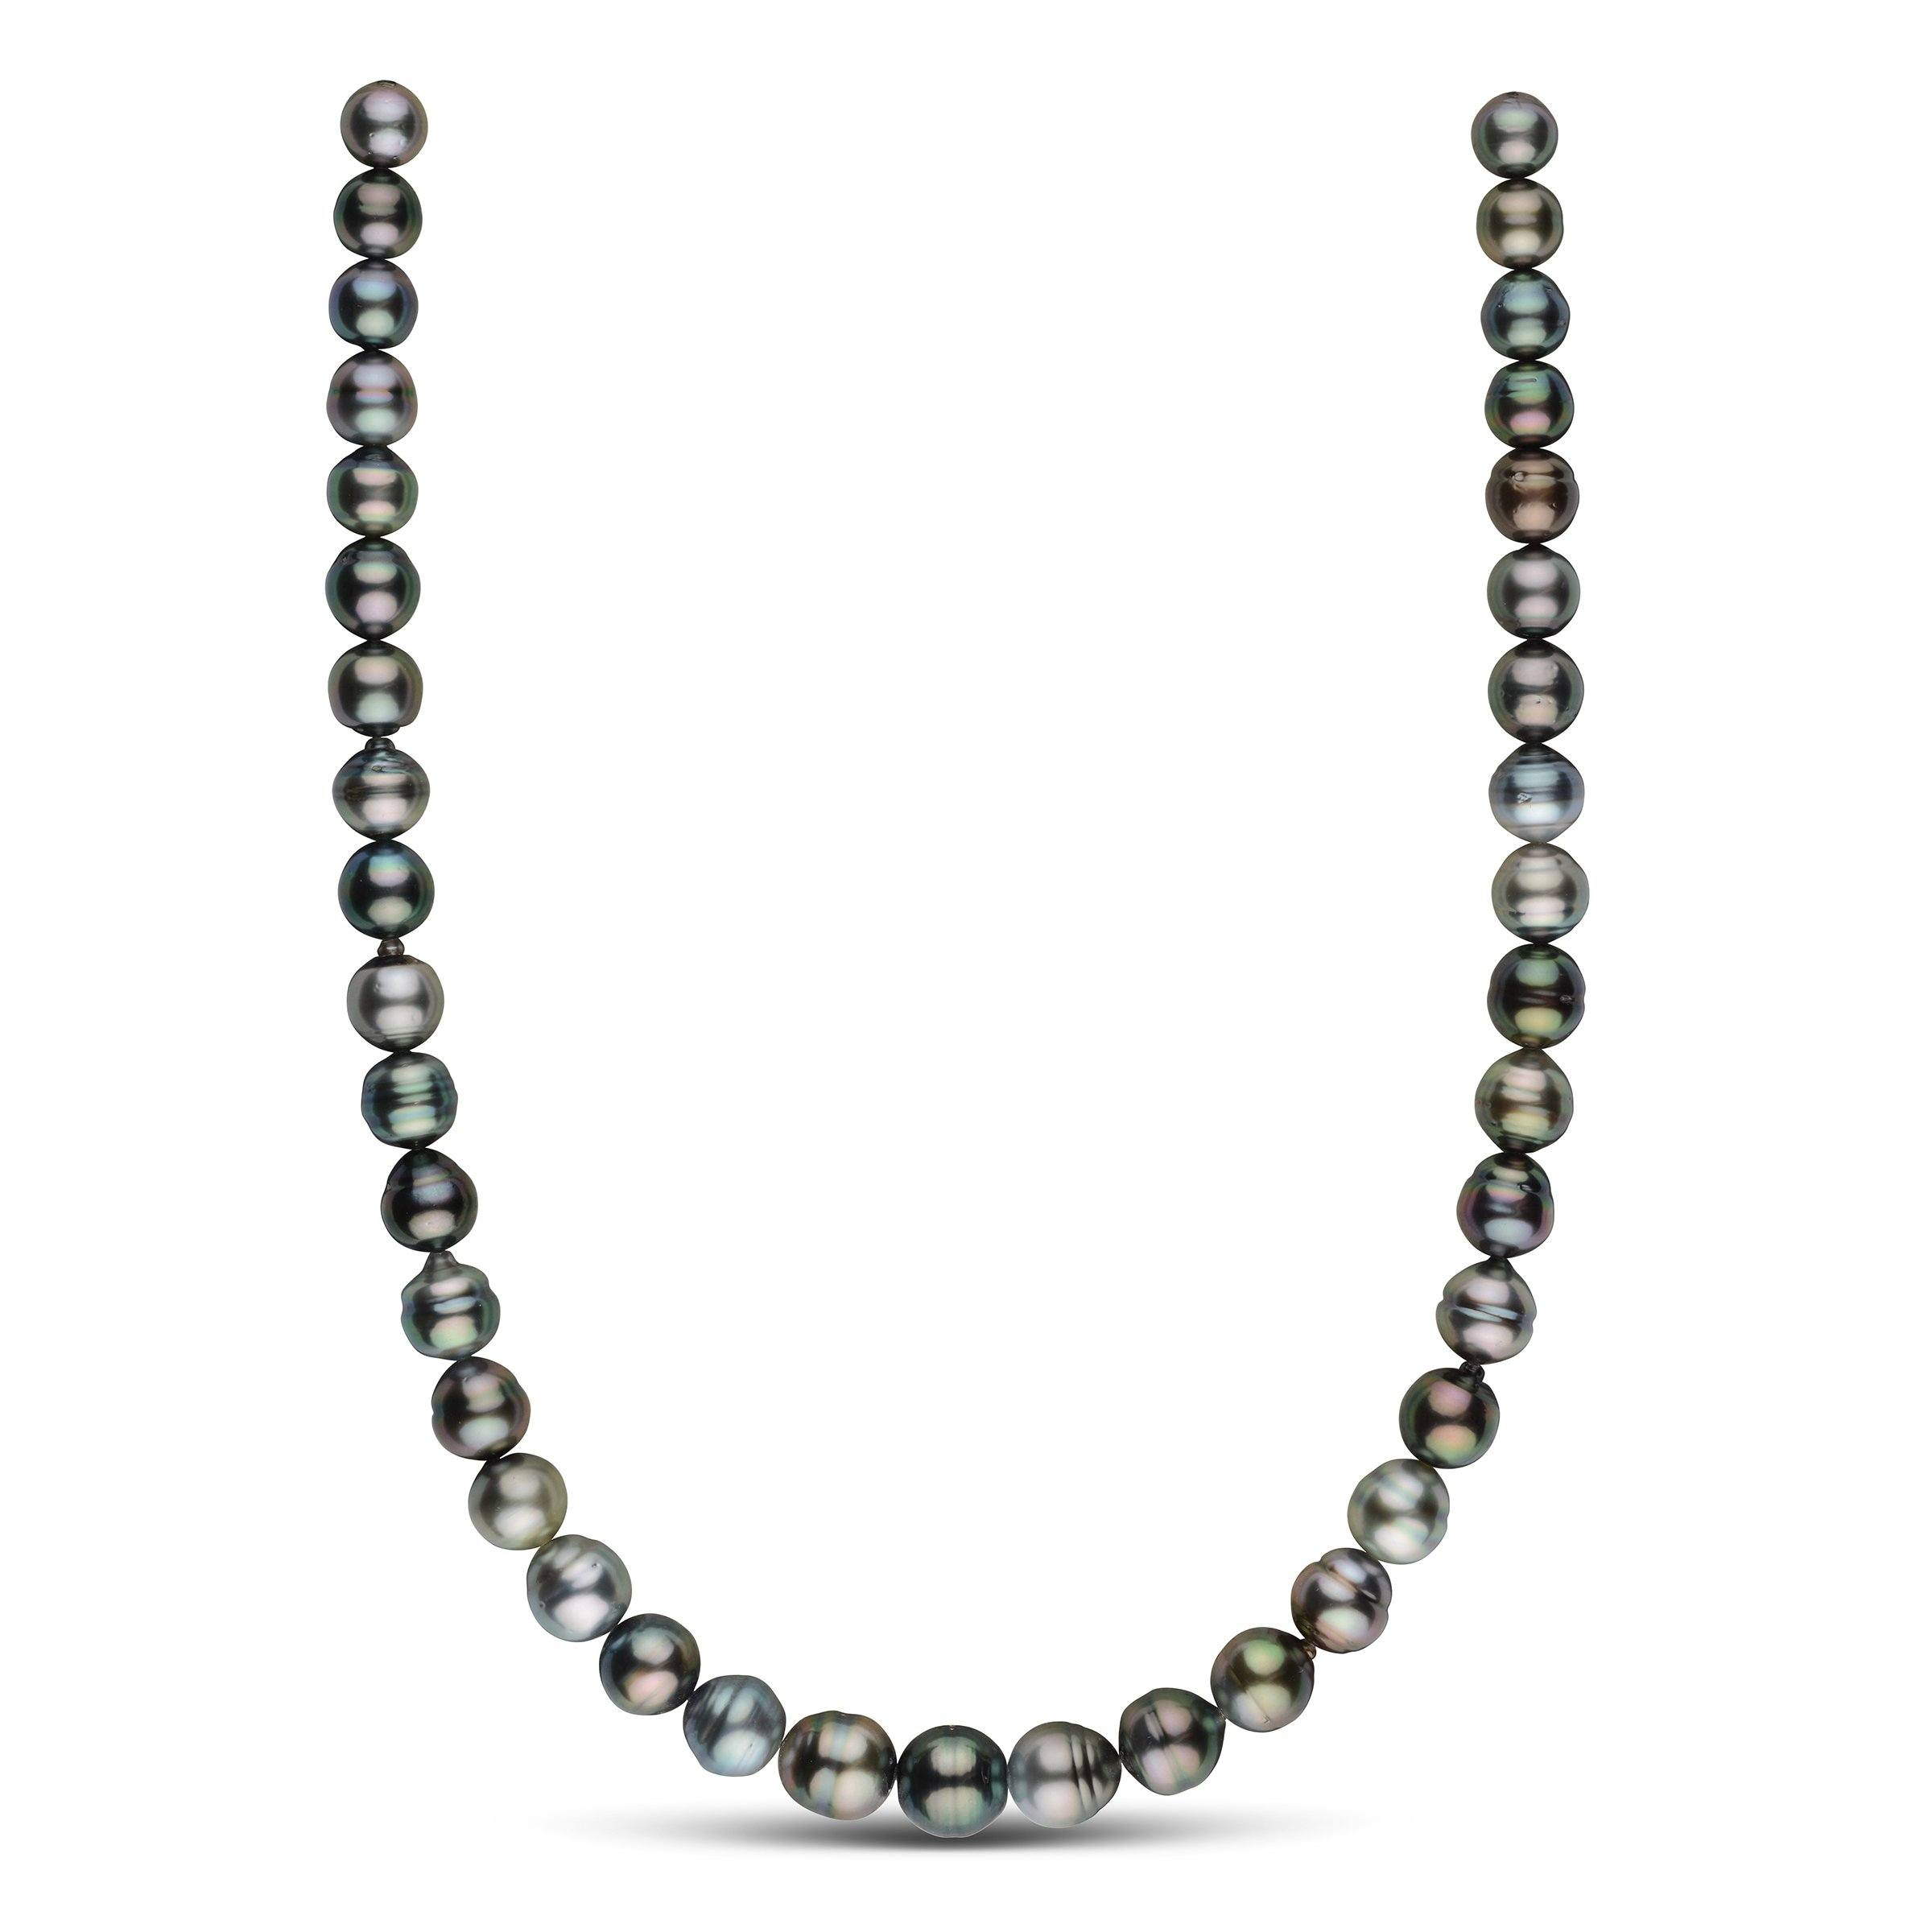 9.0-11.7 mm AA+/AAA Tahitian Baroque Pearl Necklace